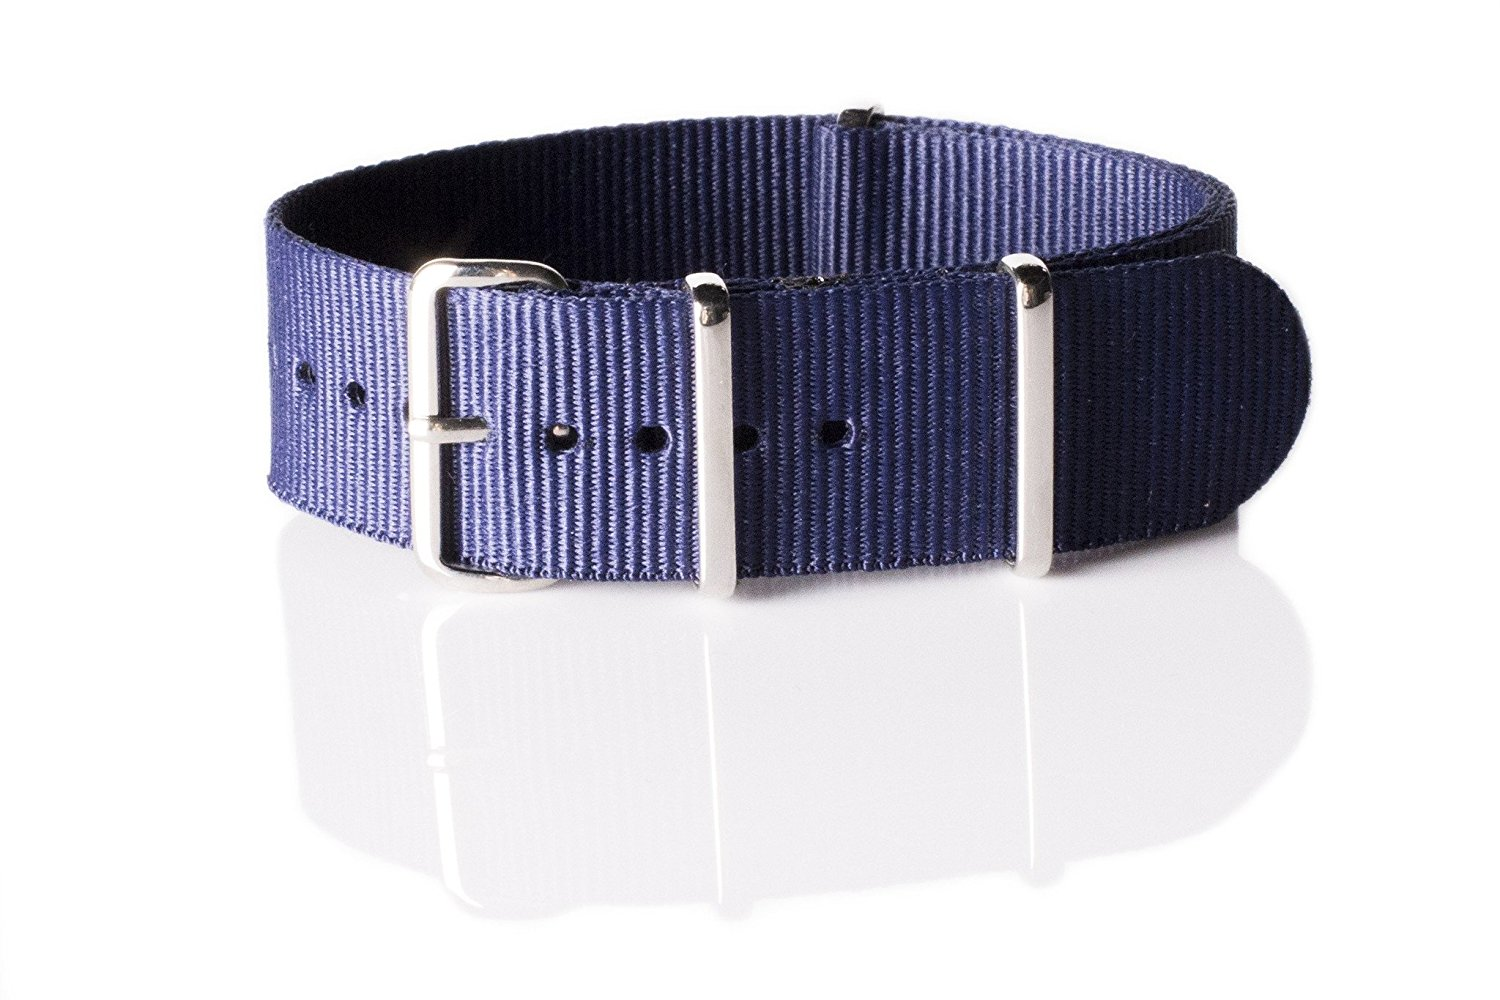 NATO G10 Nylon Premium Quality Replacement Watch Band Strap - 18mm / Navy Blue - FITS ALL WATCHES - (Military Army, J. Crew, Timex Weekender, Daniel Wellington, Urban Outfitters, Luminox, Seiko, Citizen, Blackout Watches, Victorinox Swiss Army, Rolex and more)